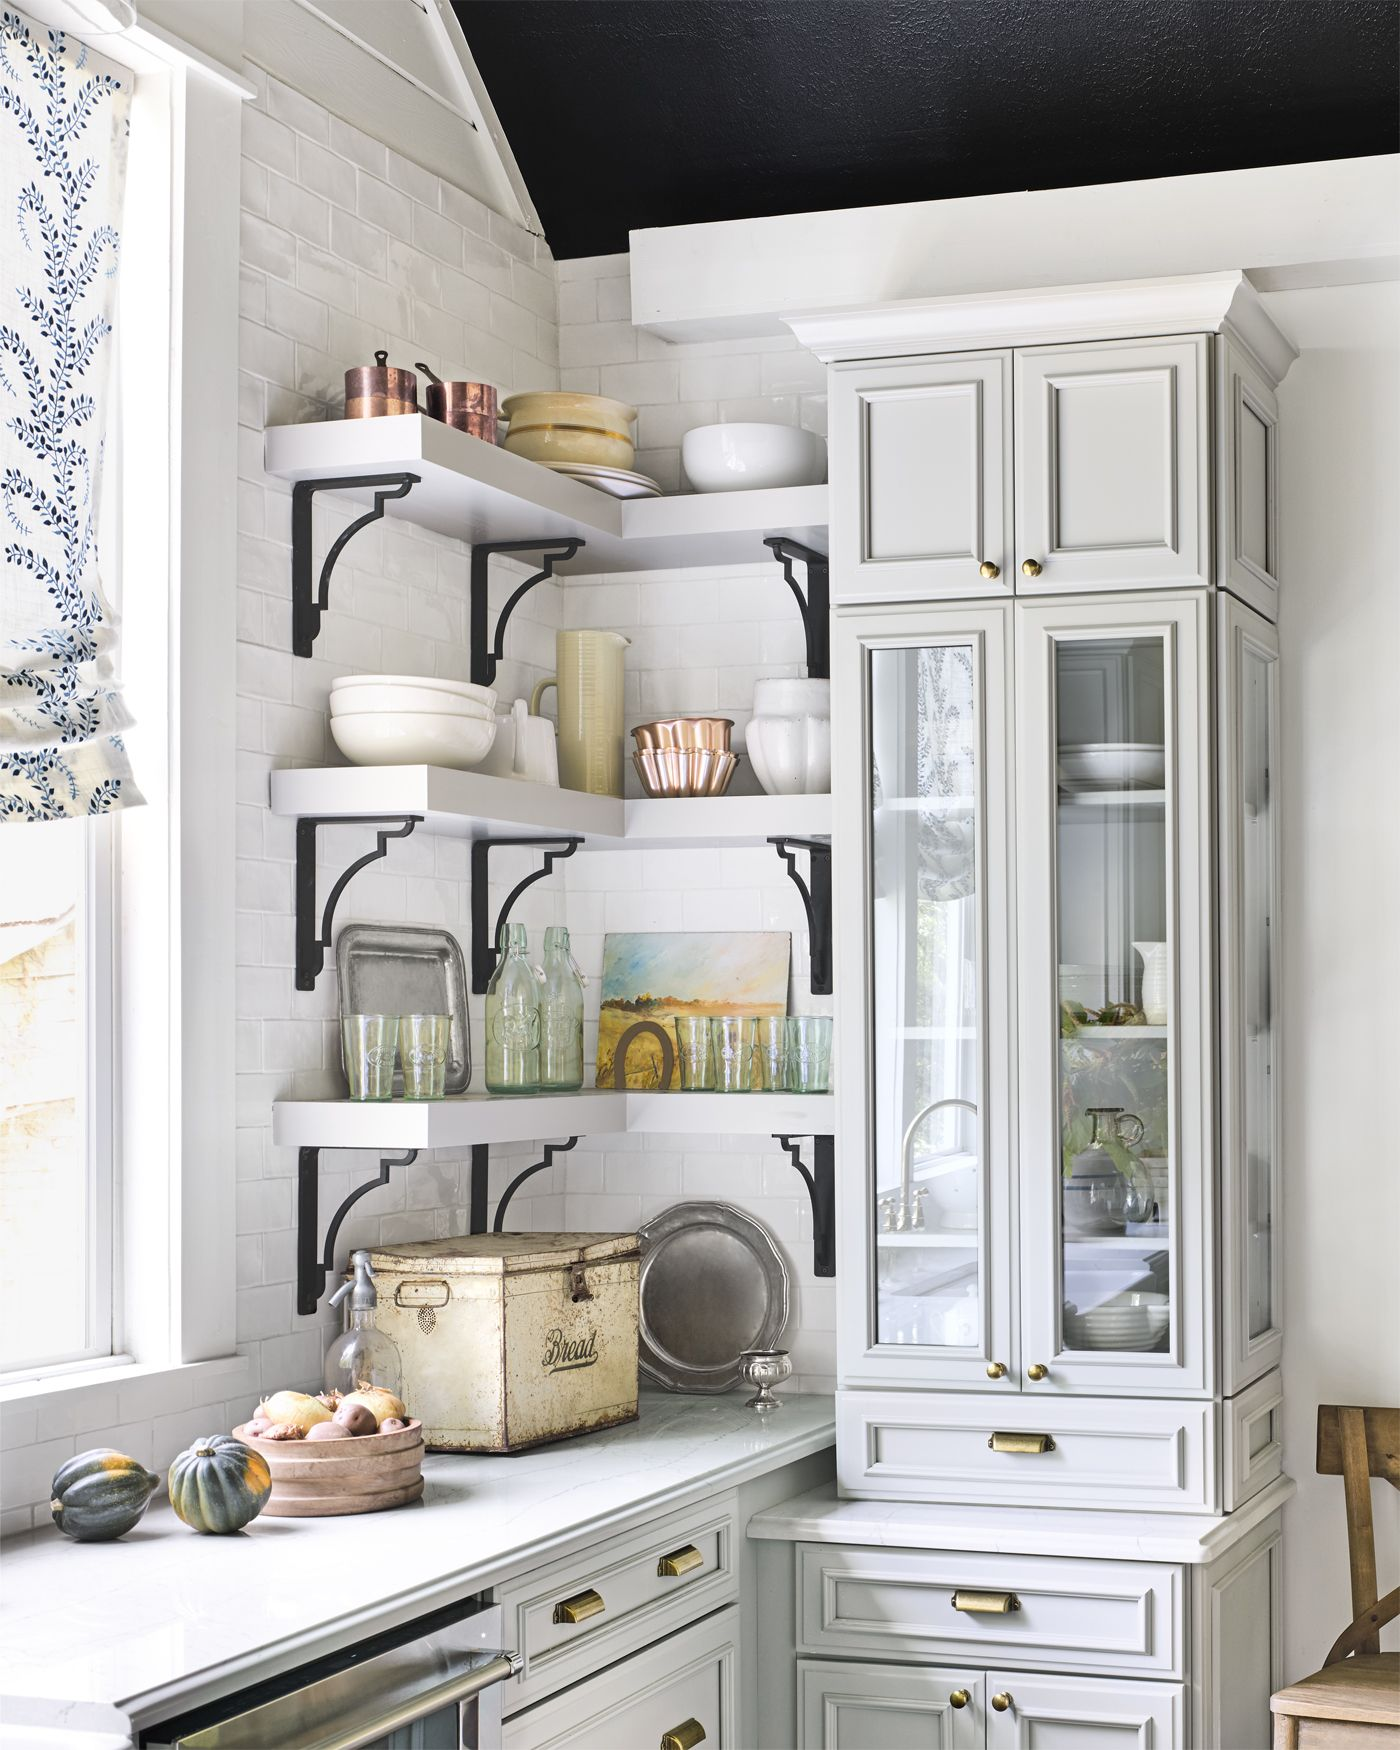 16 Perfect Kitchen Designs For Classy Homes: See This Tennessee Fixer-Upper Go From Tattered To Picture